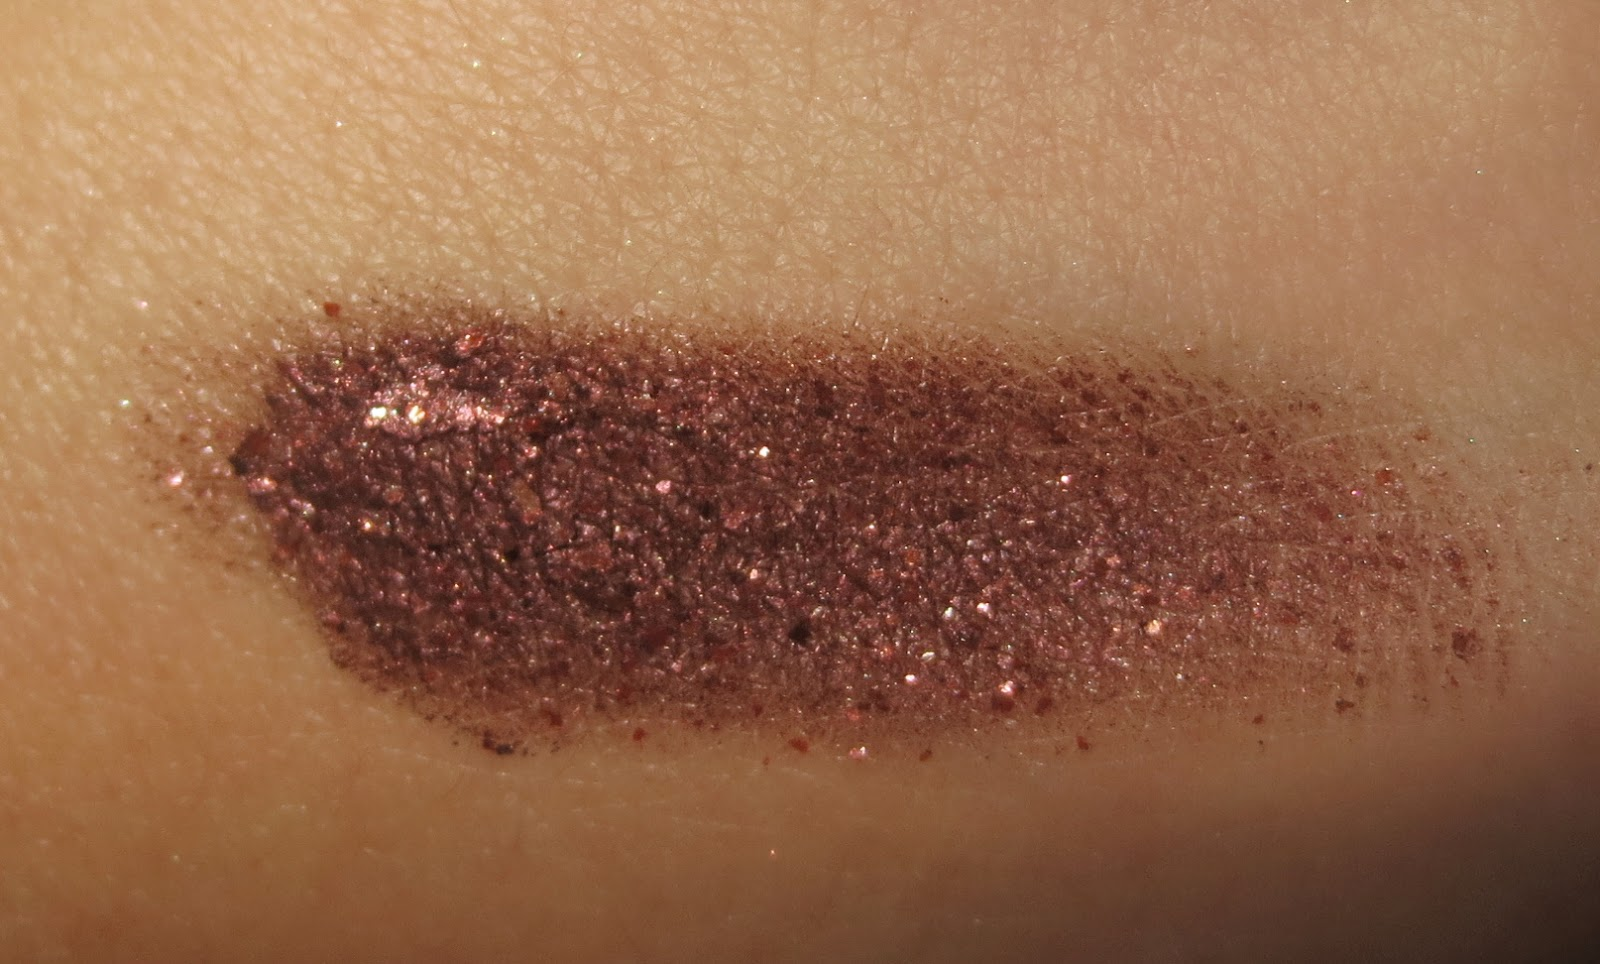 Stila Magnificent Metals Foil Finish Eye Shadow - Metallic Merlot swatch